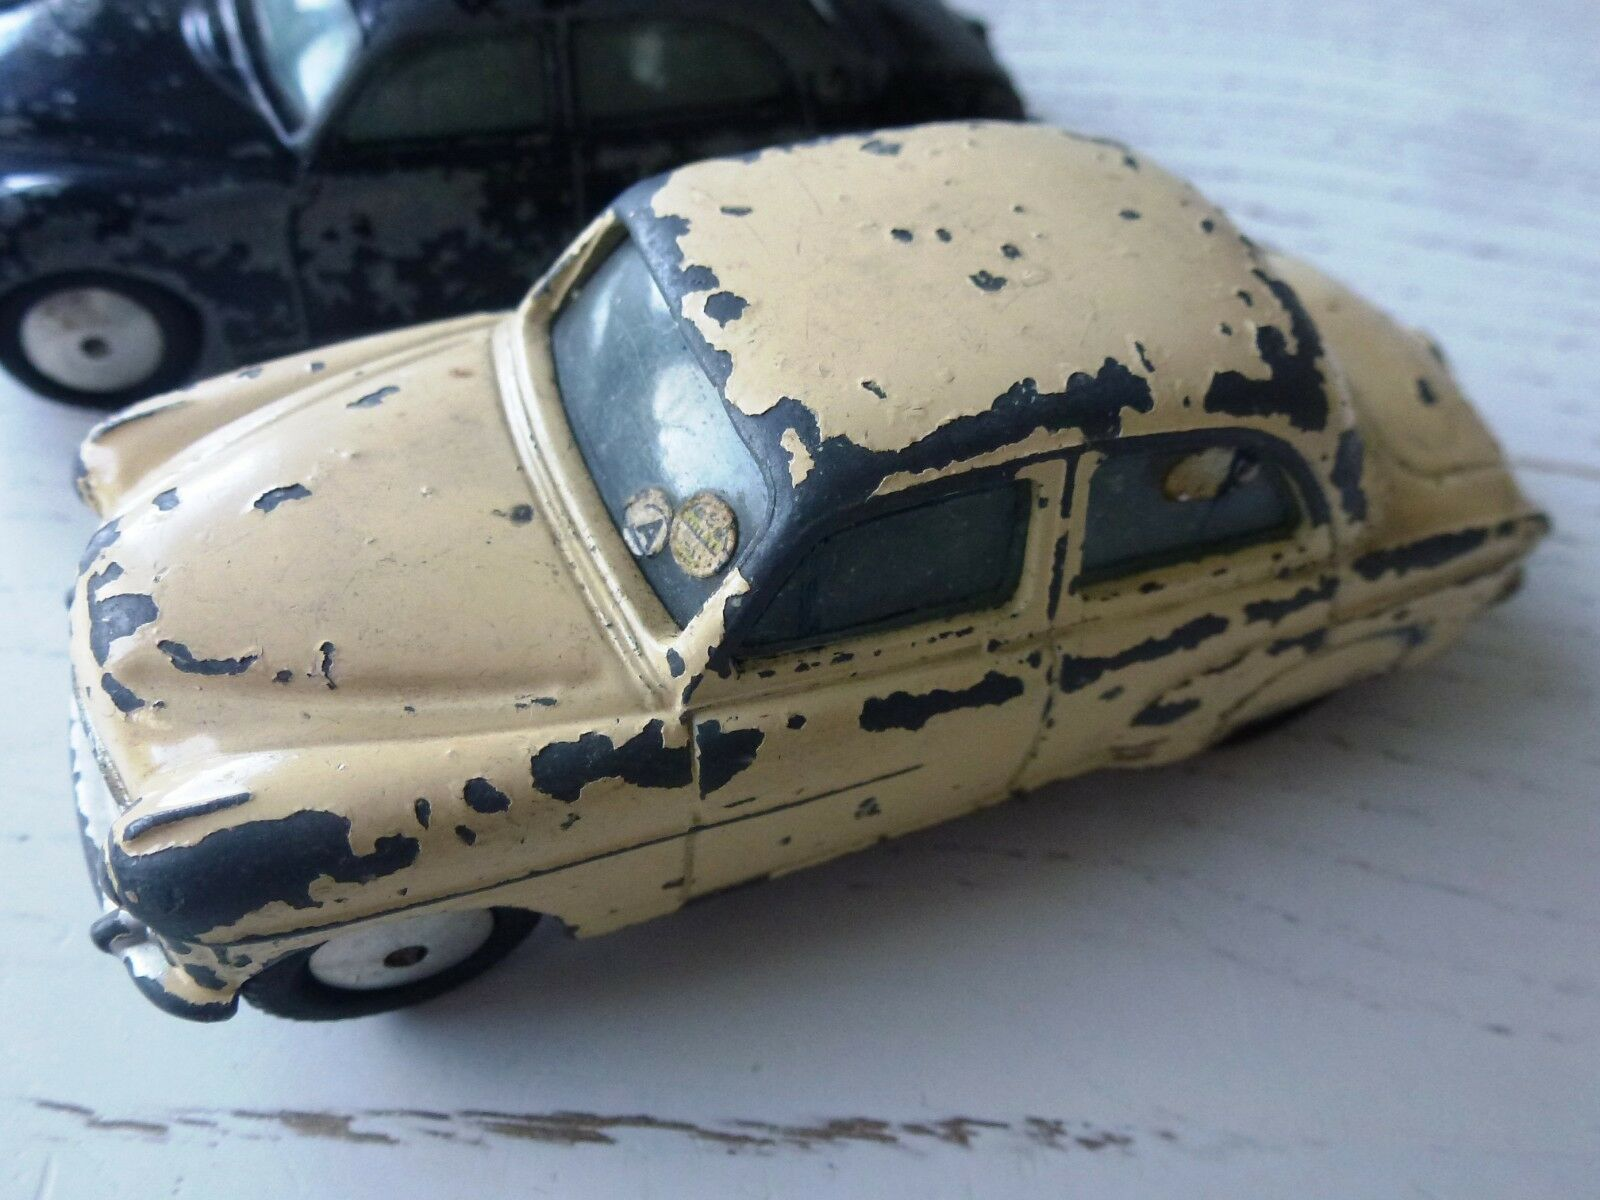 CORGY TOYS Vauxhall Velox, RILEYPATHFINDER, Lamborghini, tous MADE IN GT GT GT BRITAIN 2ee6c8